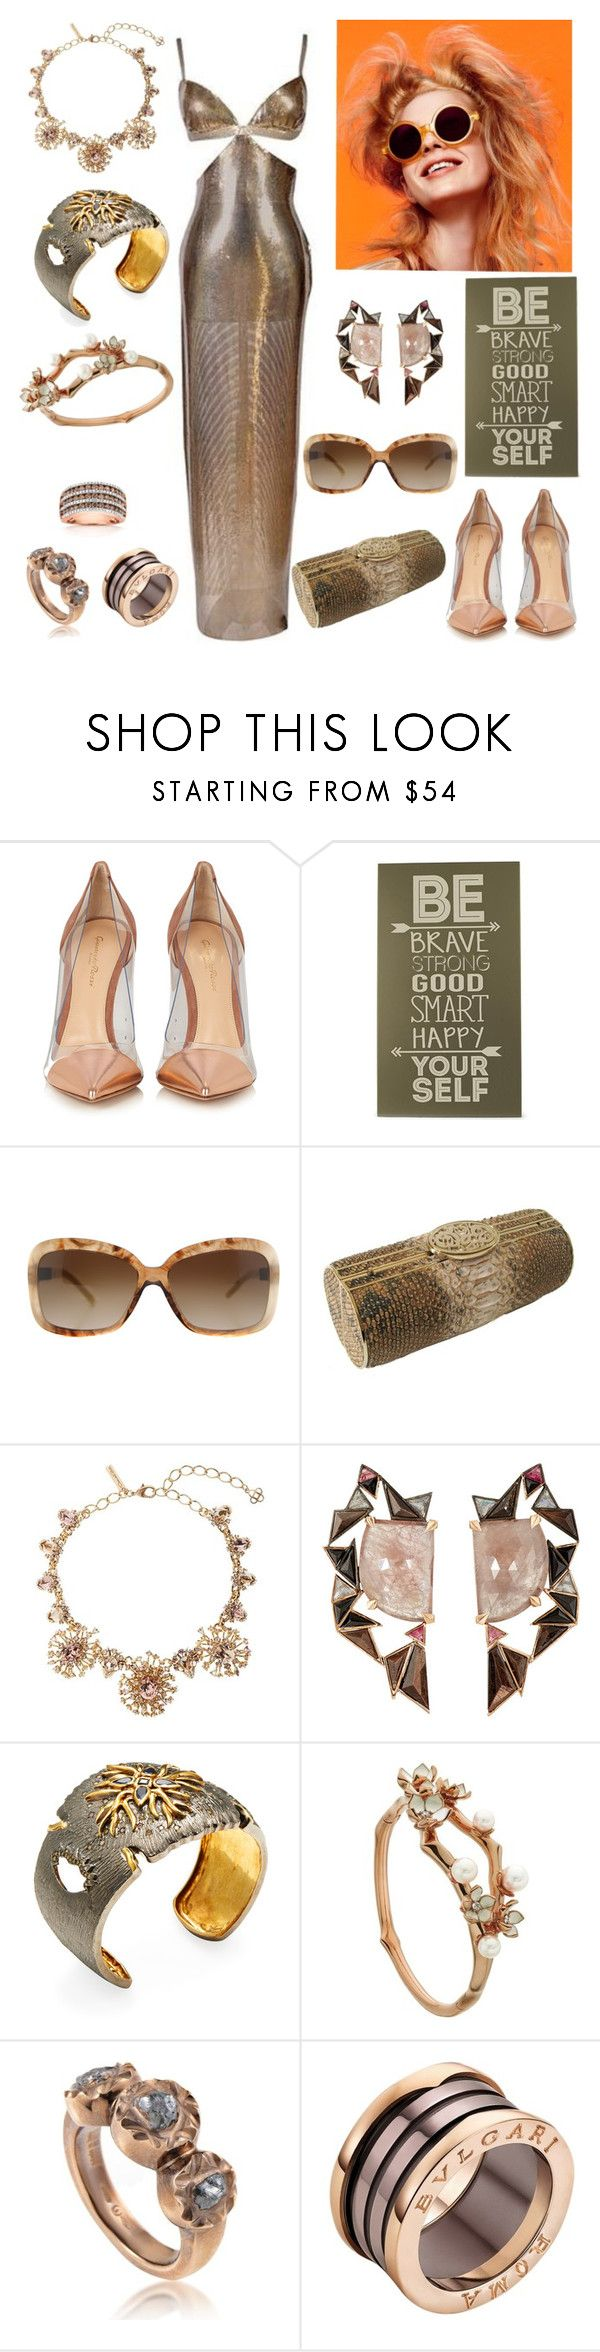 """""""Be Yourself"""" by christined1960 ❤ liked on Polyvore featuring Versace, Olsen, Gianvito Rossi, Home Decorators Collection, Burberry, NADA SAWAYA, Oscar de la Renta, Nak Armstrong, Artisan and Shaun Leane"""